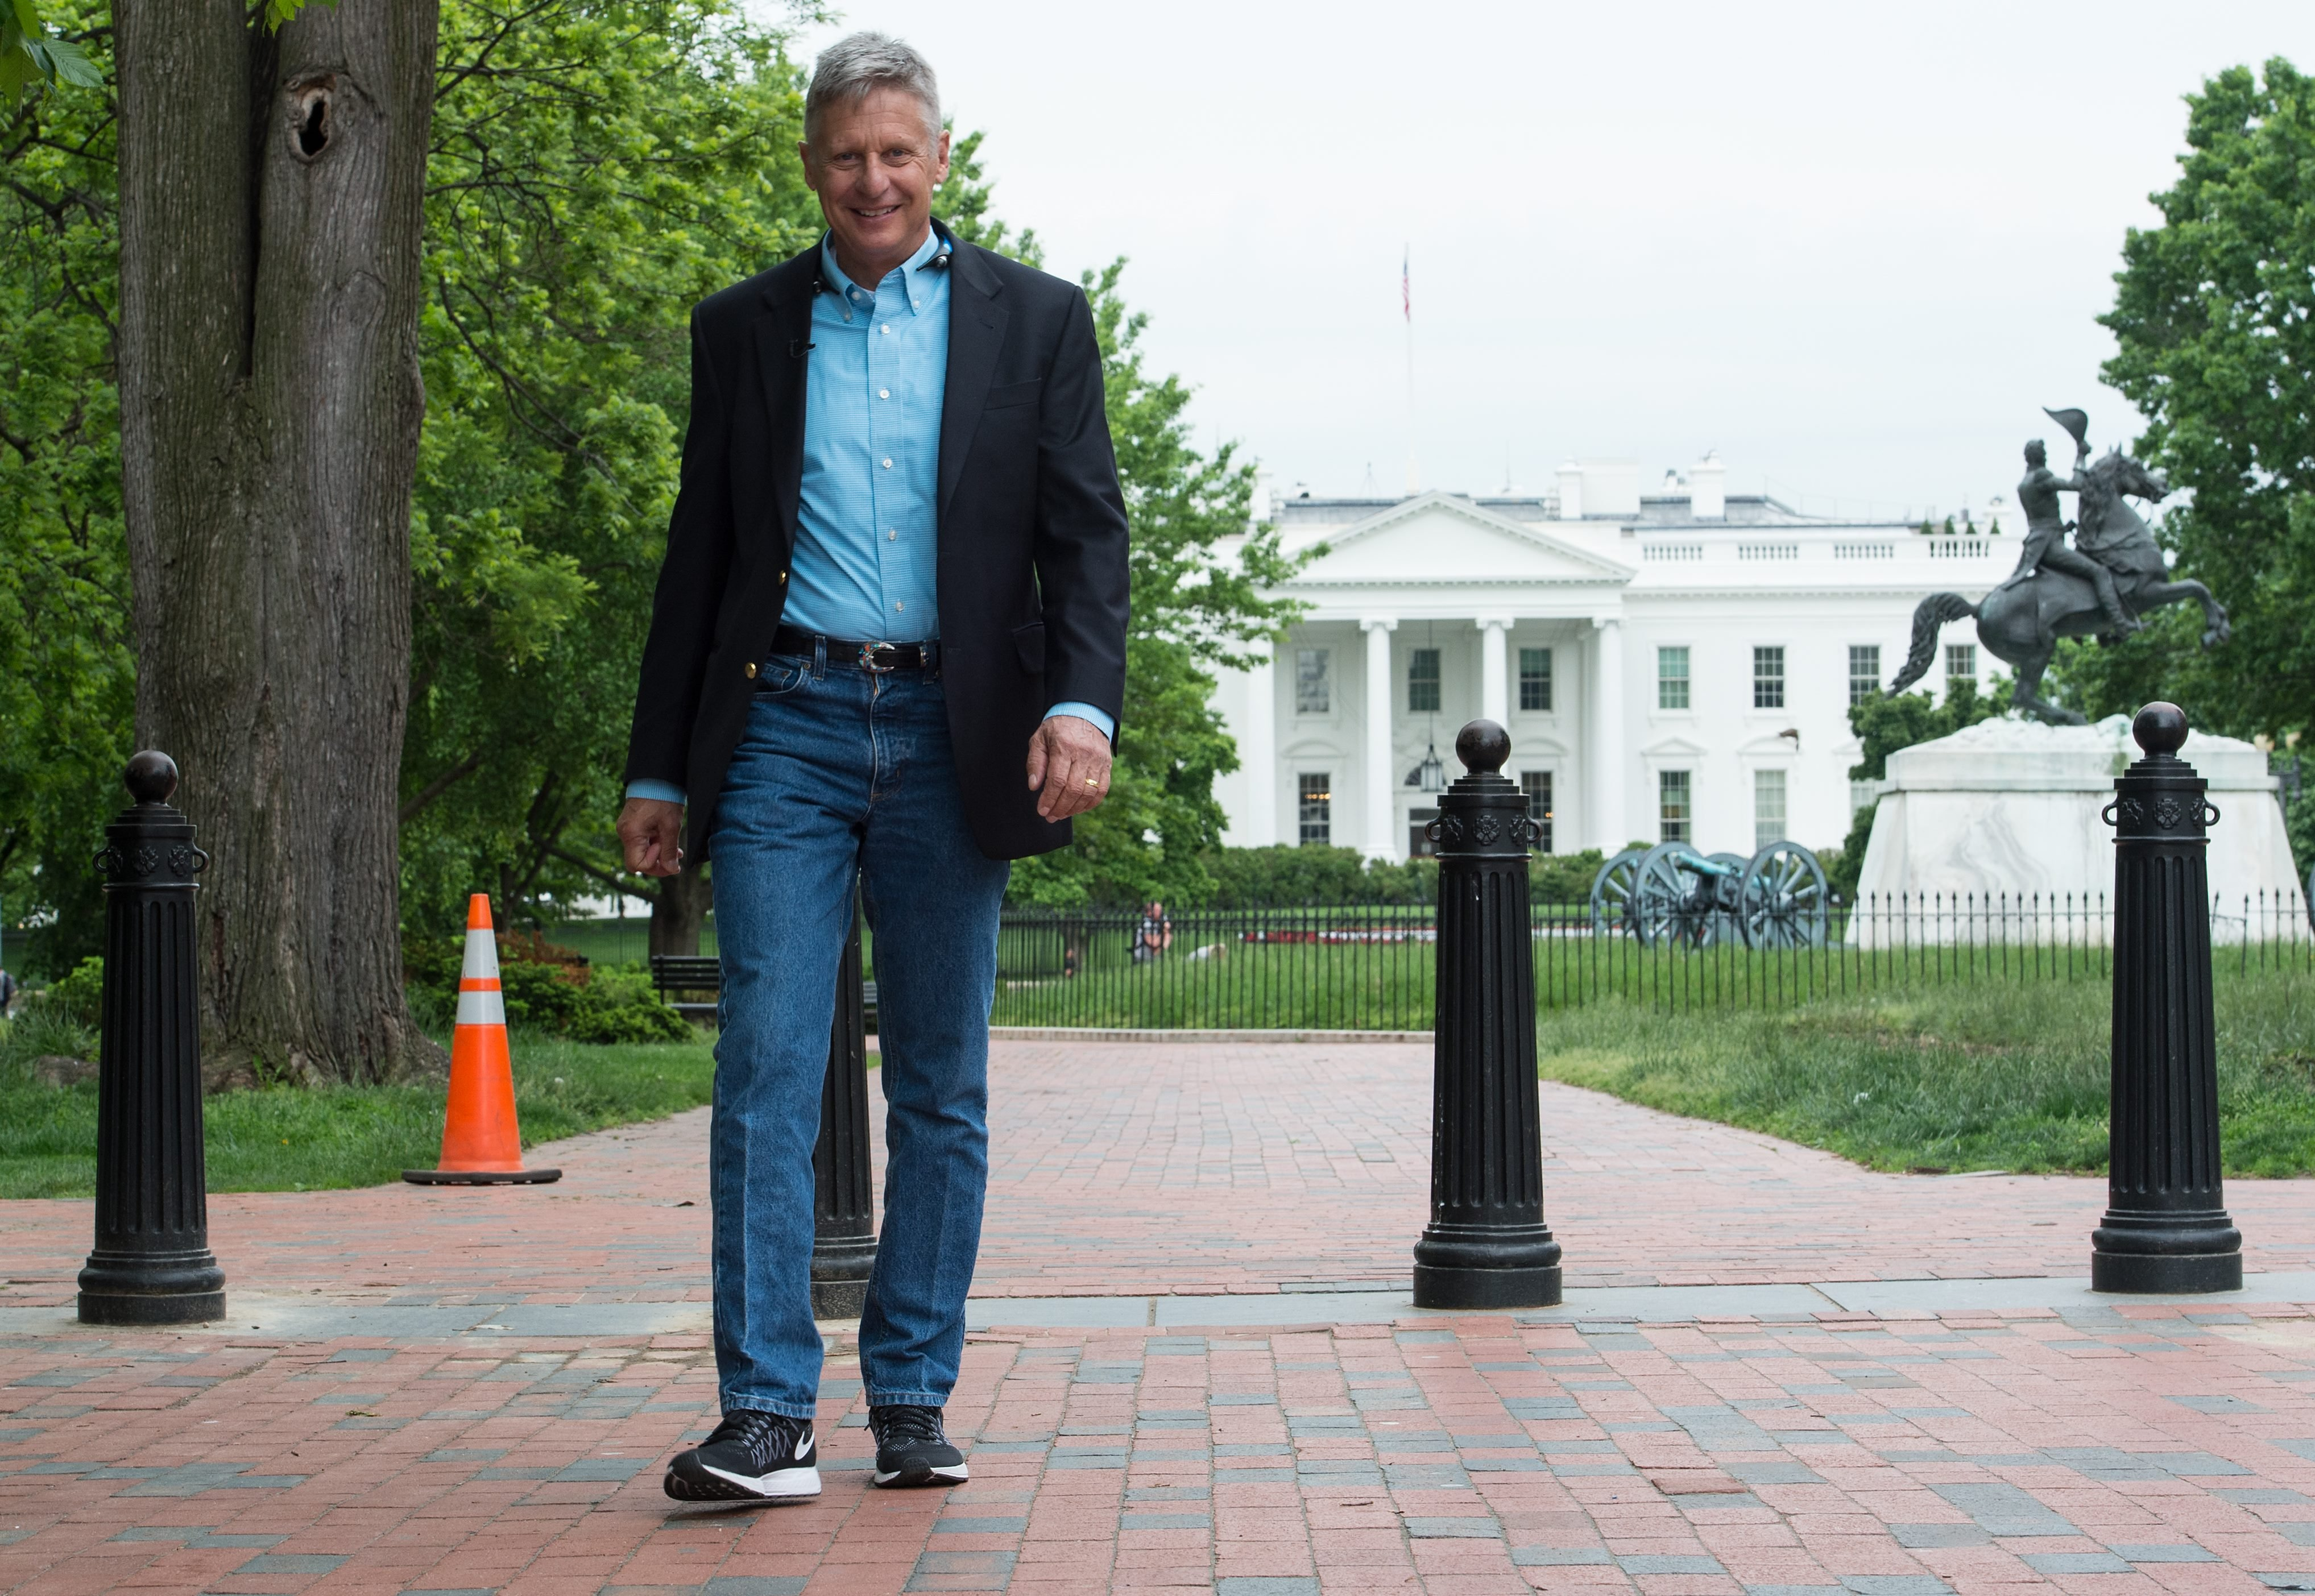 US Libertarian Party presidential candidate Gary Johnson walks in Lafayette Park across from the White House during an interview with AFP in Washington, DC, on May 9, 2016. Former New Mexico Gov. Gary Johnson is running for president as a Libertarian, just as he did 2012 when he managed to get 1.2 million votes. Regardless of his chances of a win, Johnson is reaching out to undecided Republican voters who are looking for a third-party option and are unconvinced that Donald Trump is the answer. / AFP / Nicholas KAMM (Photo credit should read NICHOLAS KAMM/AFP/Getty Images)